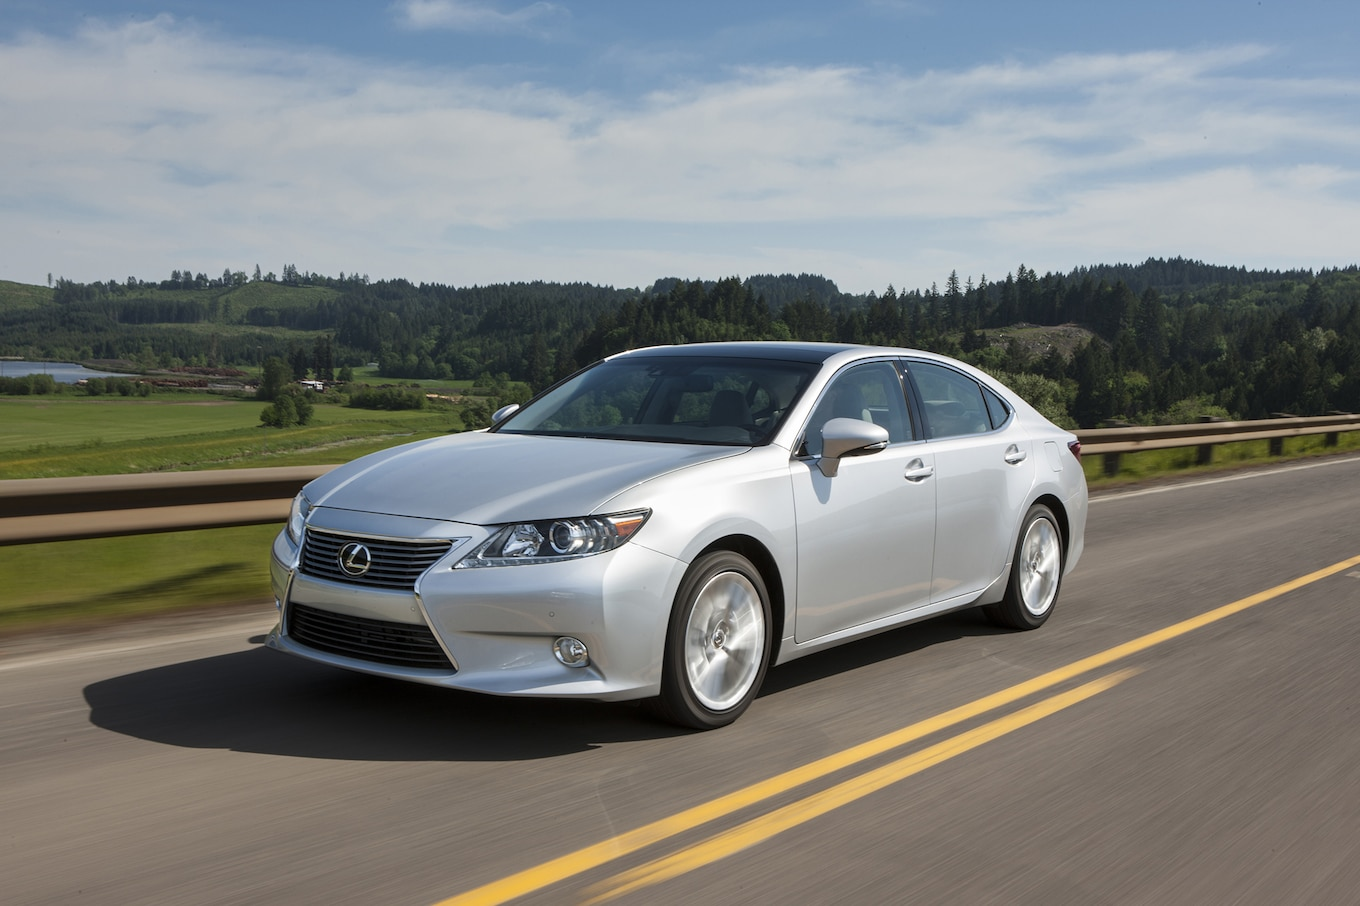 2013 Lexus ES350 Reviews and Rating